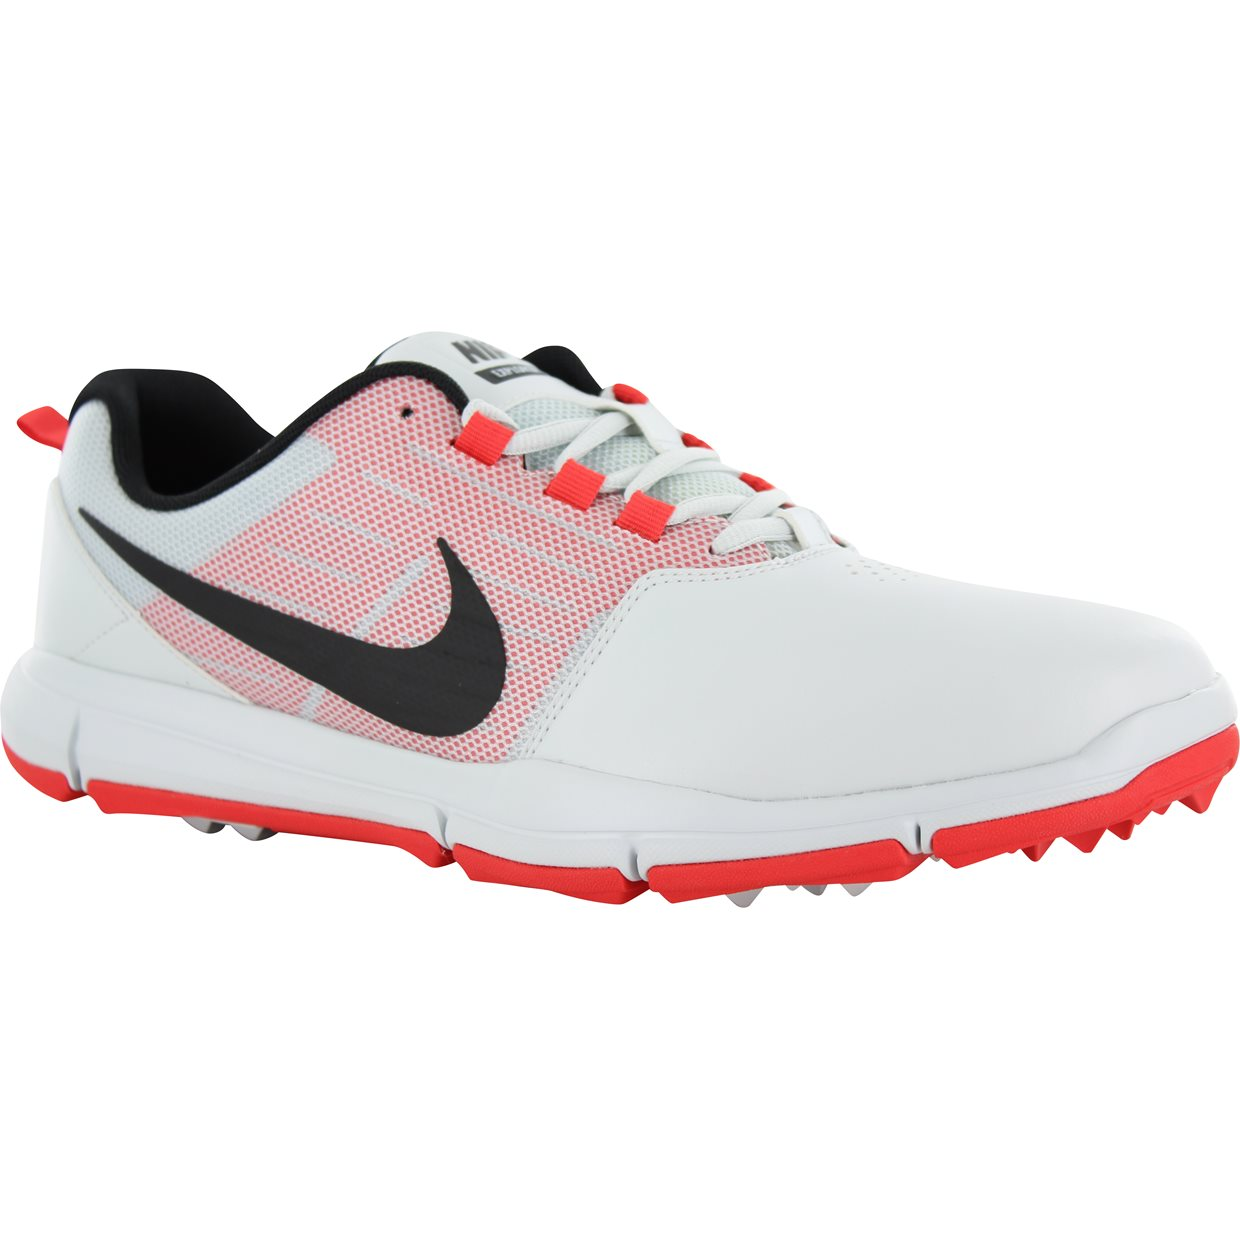 Nike Explorer SL Spikeless Golf Shoes - White/Red